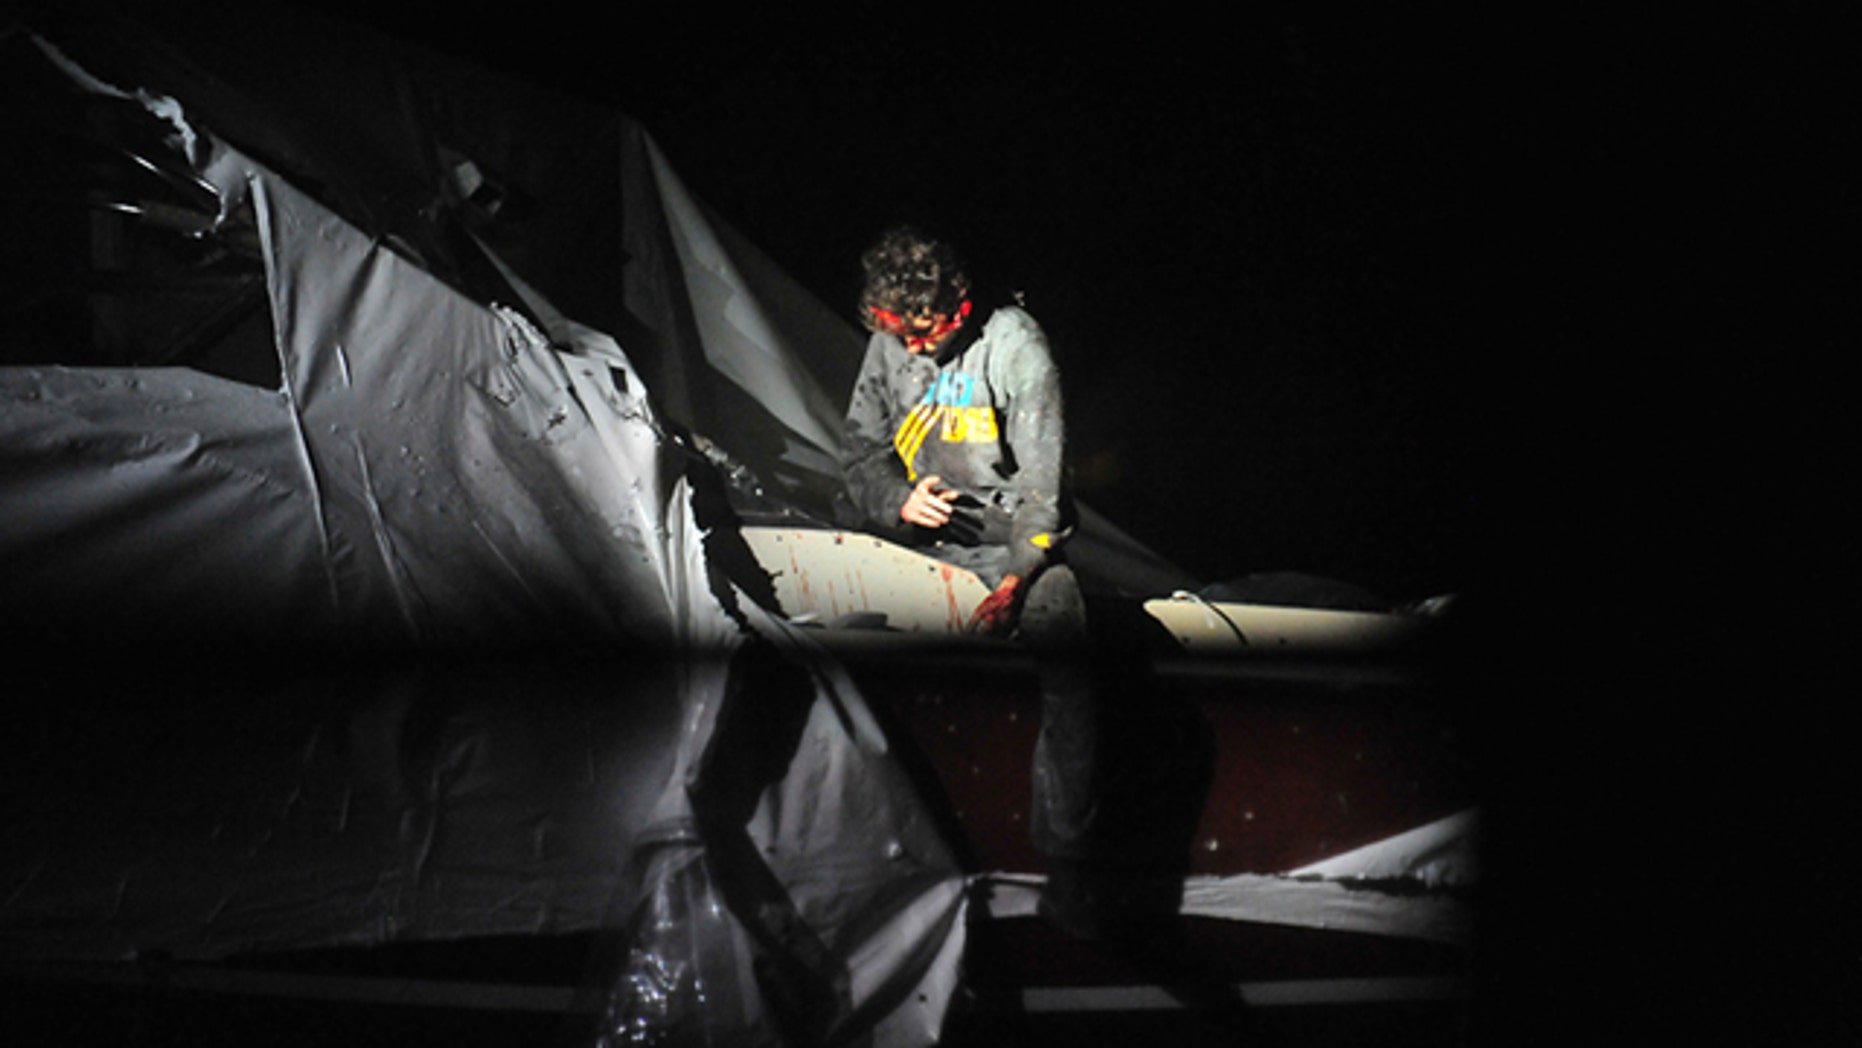 April 19, 2013: In this photo provided by the Massachusetts State Police, Boston Marathon bombing suspect Dzhokhar Tsarnaev leans over in a boat at the time of his capture by law enforcement authorities in Watertown, Mass.